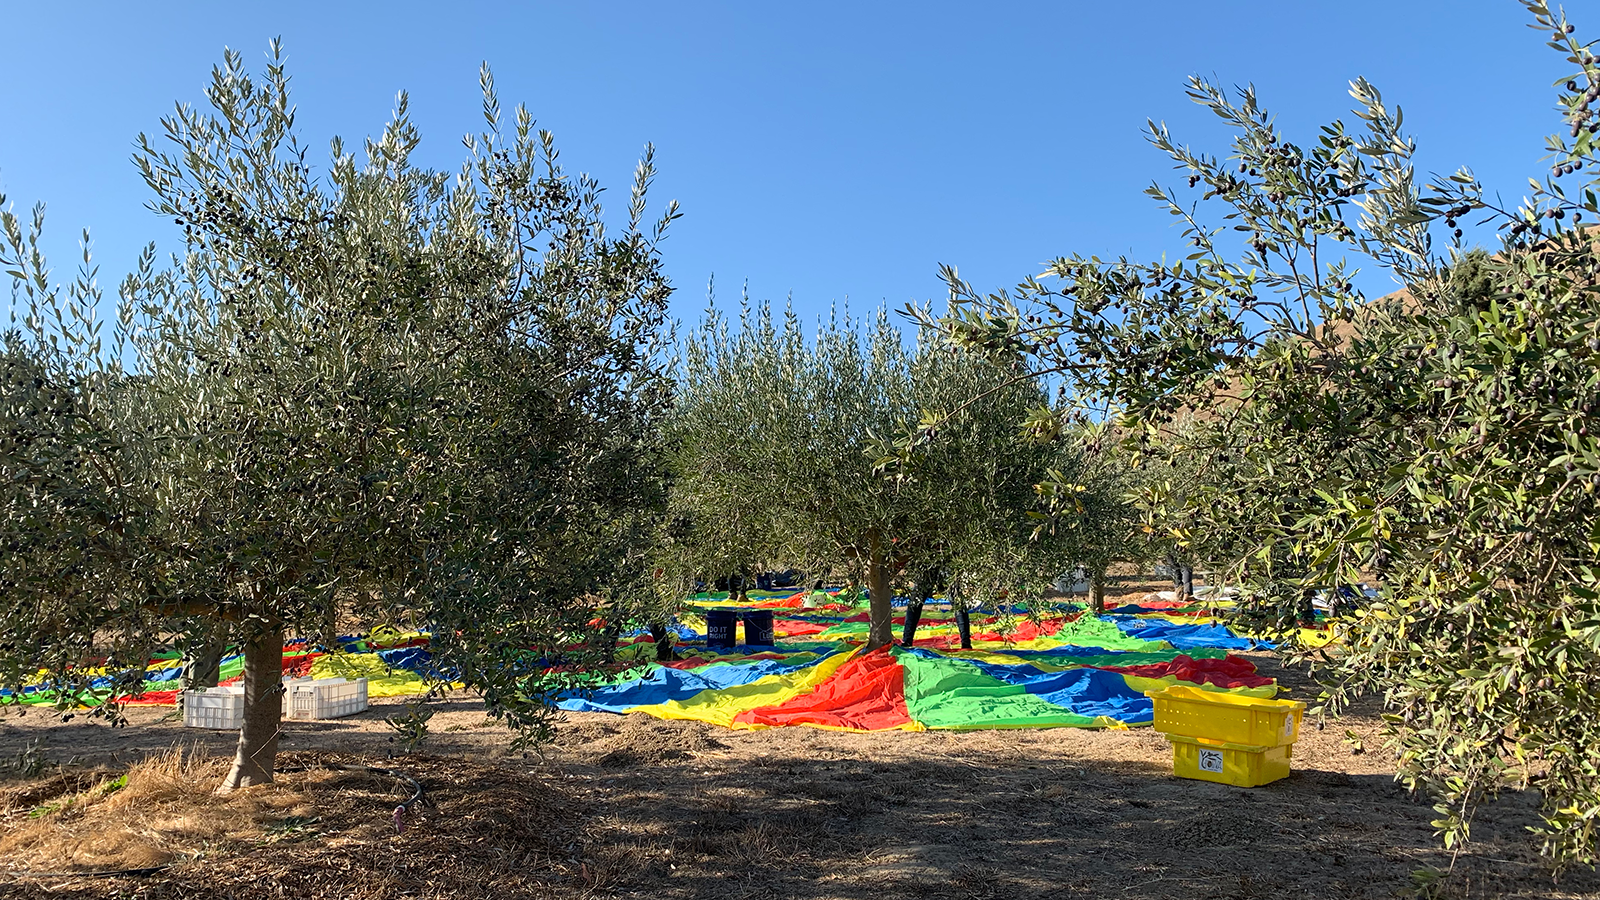 Rainbow parachutes laid down around the bases of several olive trees.